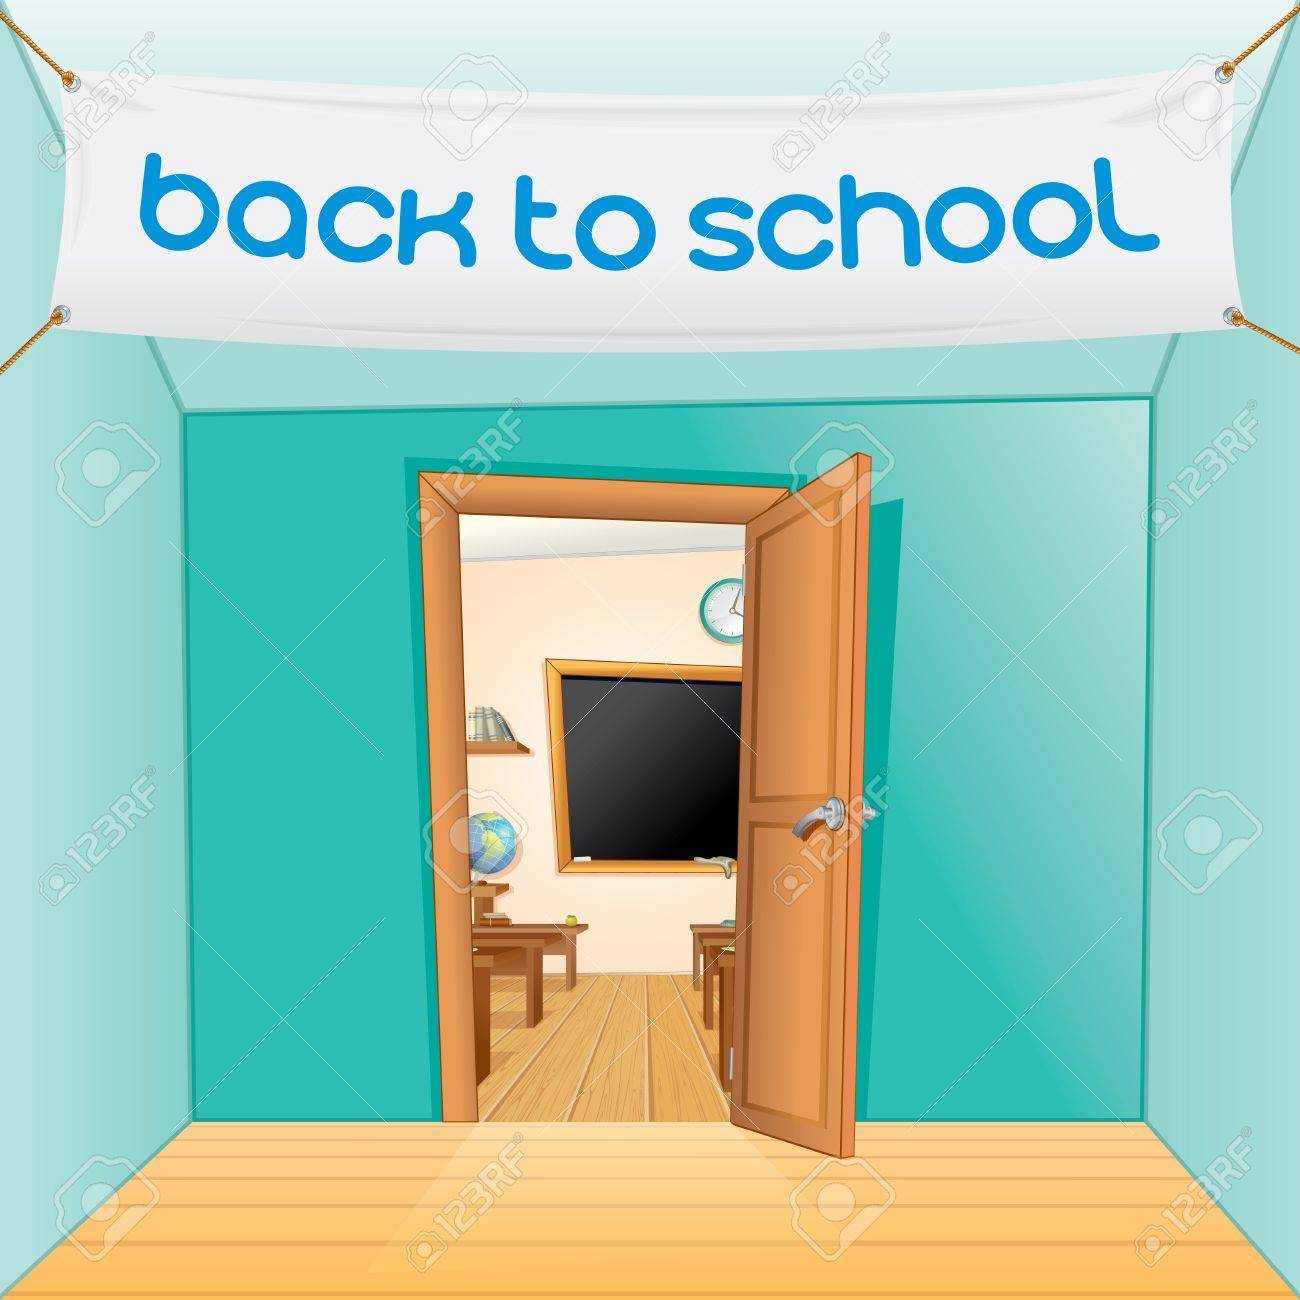 Cartoon classroom door - Back To School Vector Cartoon Illustration Stock Vector Door School Open Jpg 1300x1300 Cartoon Classroom Door